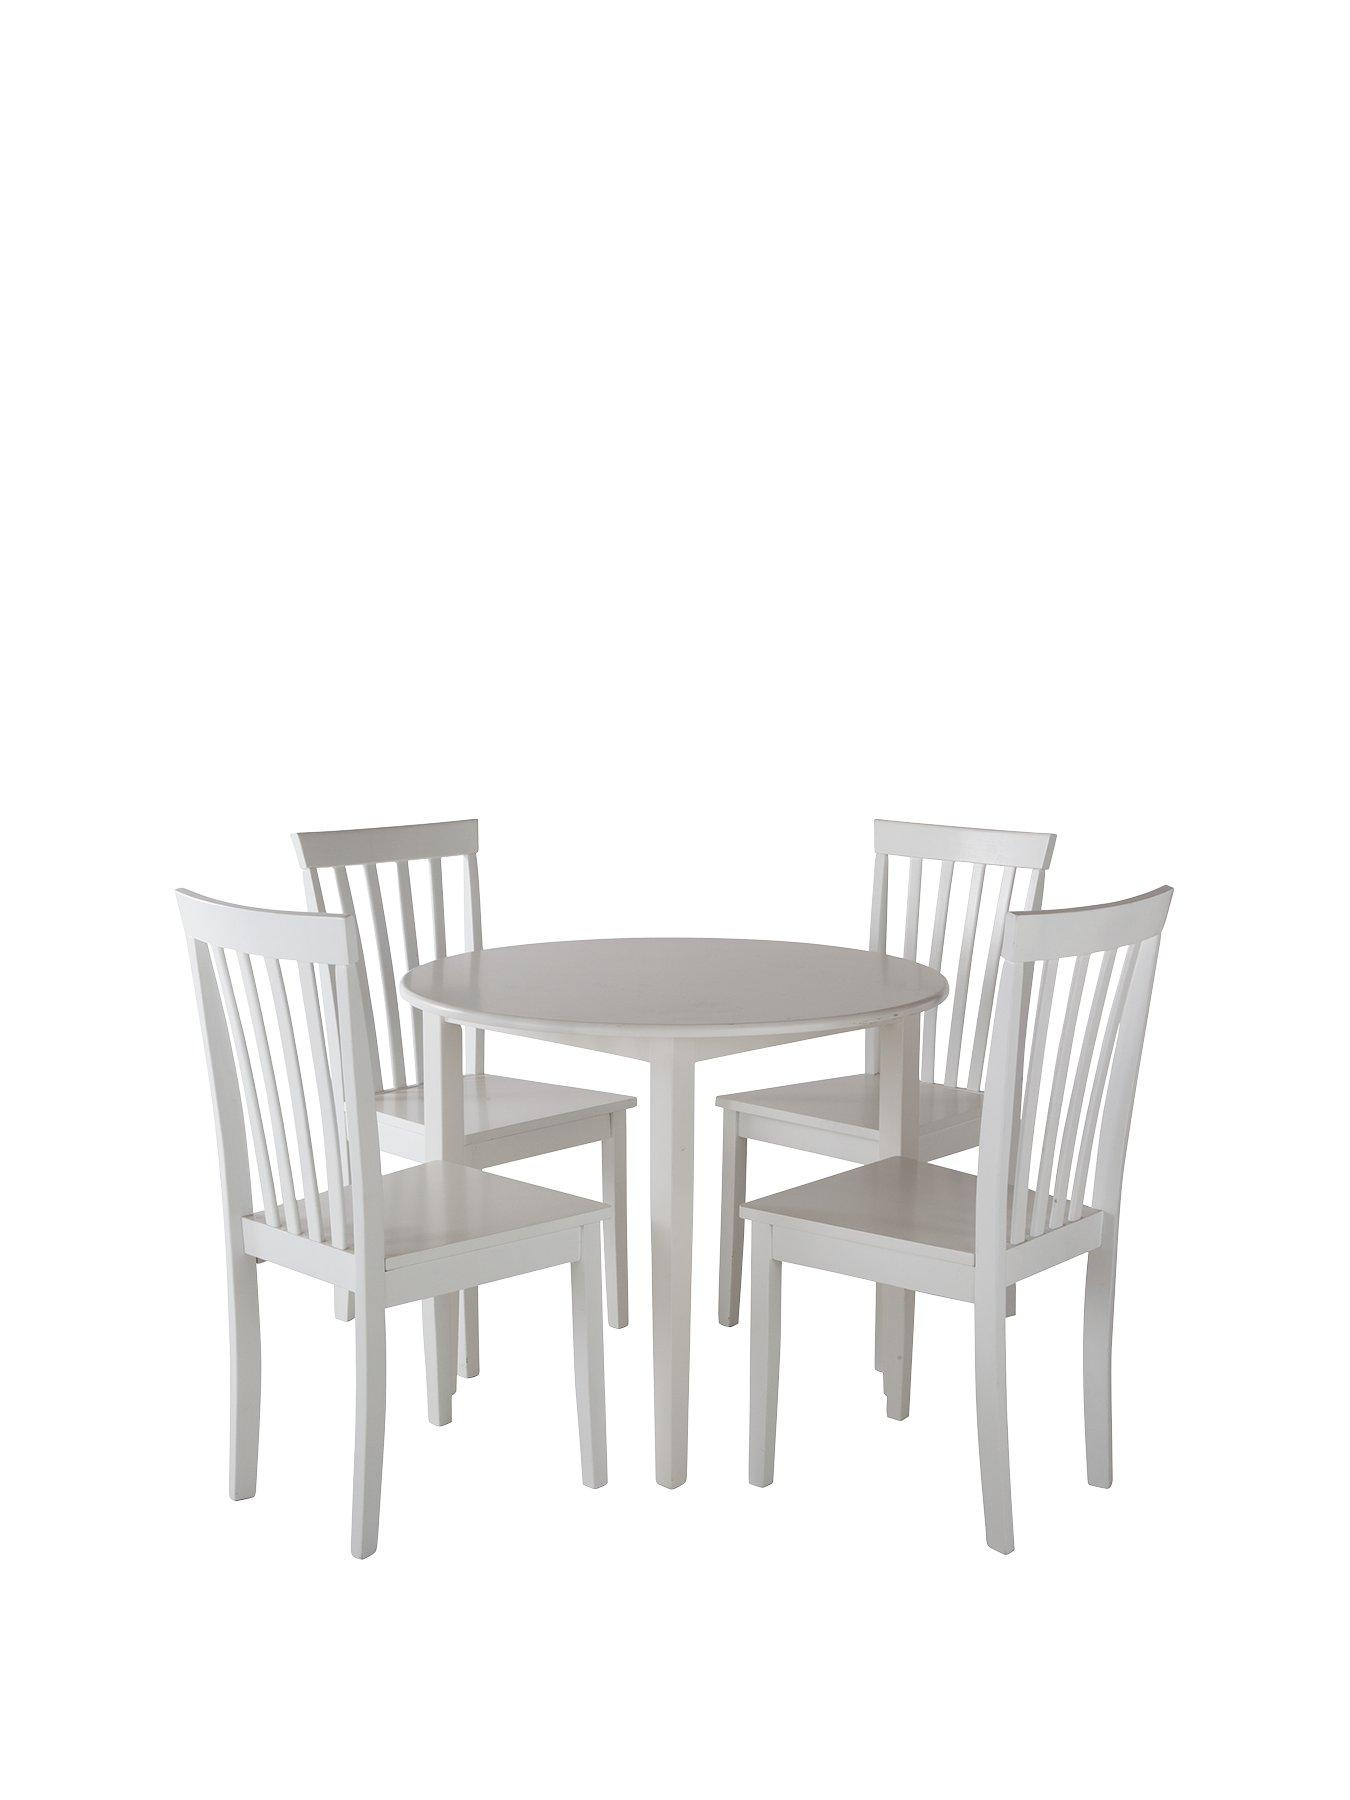 dining table and chair set uk small patio chairs sets very co sophia 90 cm round 4 white